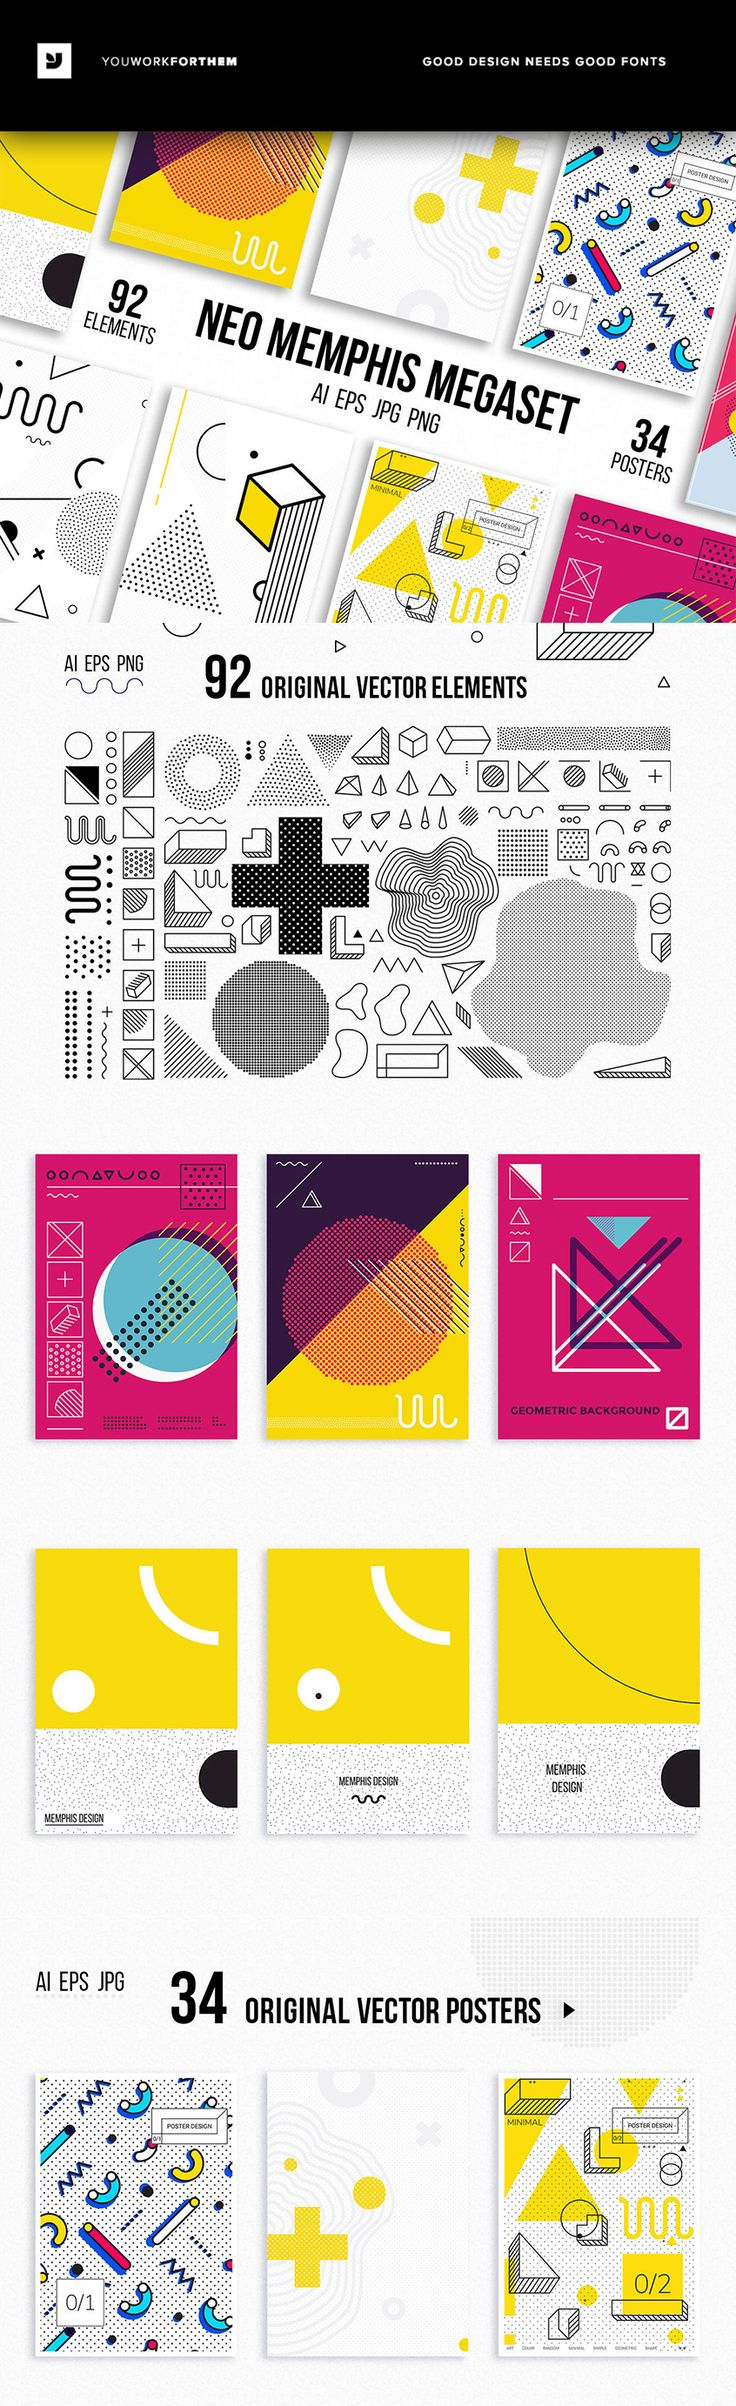 #affiliate Mega set of 34 vector posters and backgrounds, 92 original vector elements for your design. Colorful collection in MEMPHIS styles 80-90s perfect suit for greeting cards, stickers, banners, posters, web, social media, brand book, business card, email, print etc.Includes:- EPS 10 files (34 posters, 92 design elements), RGB- AI CS version files (34 posters, 92 design elements), RGB- 34 JPG posters (various size with high dimension, 5000px one side, 300 dpi),